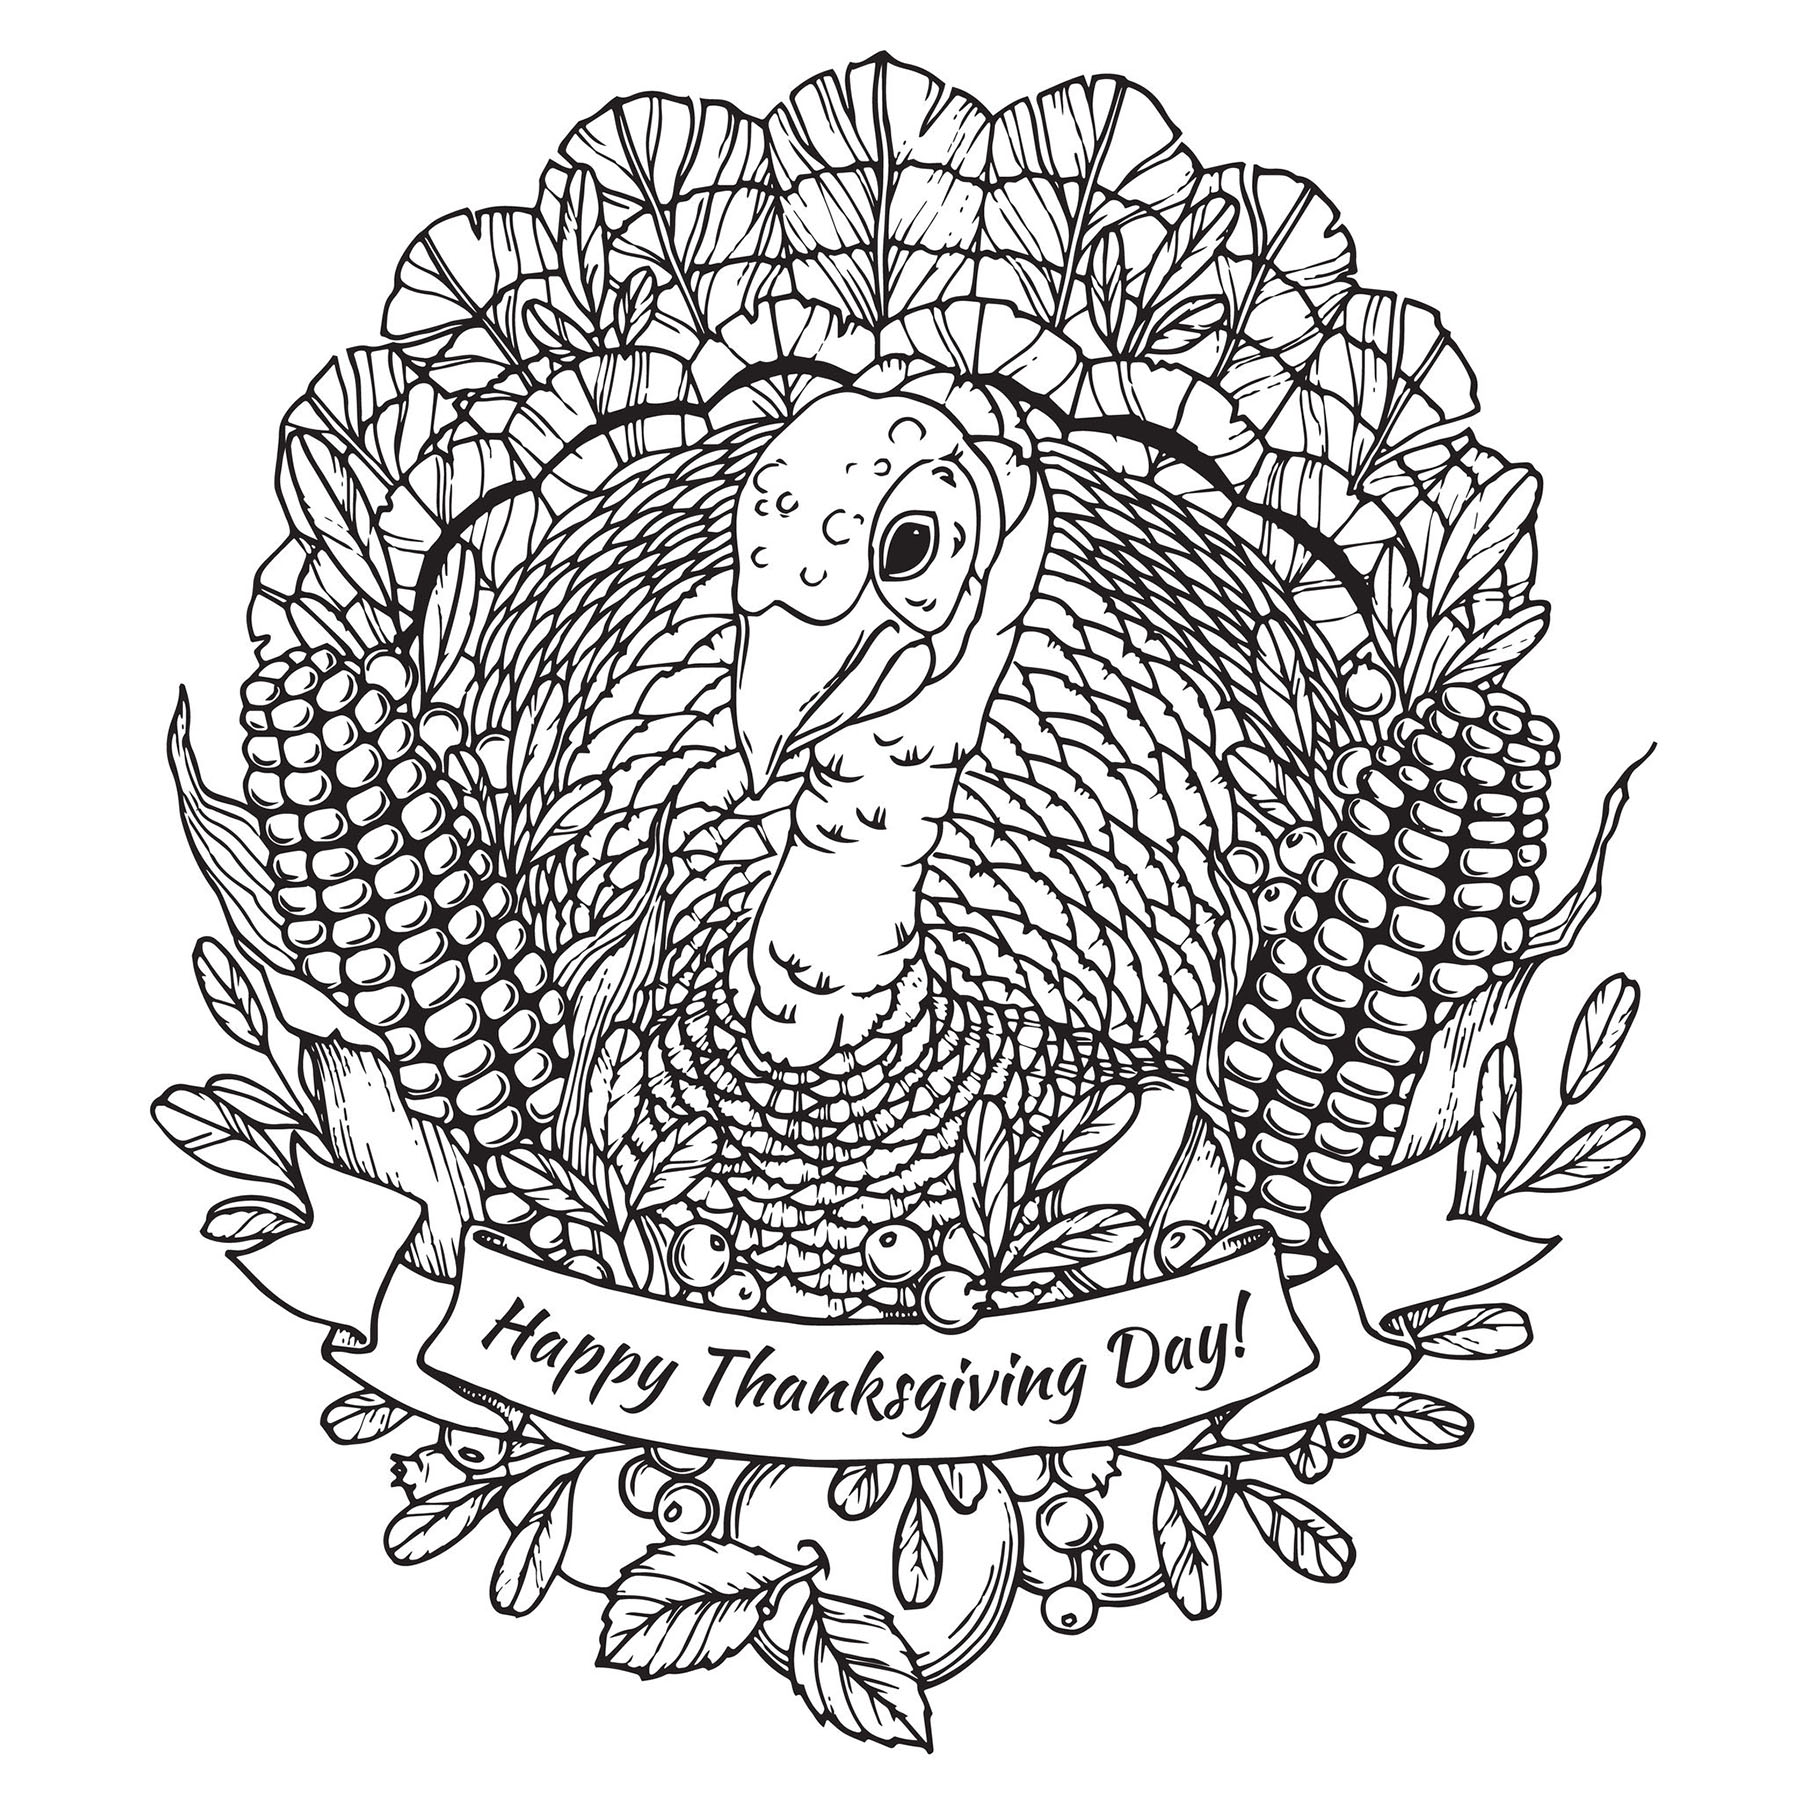 Thanksgiving coloring page to print and color